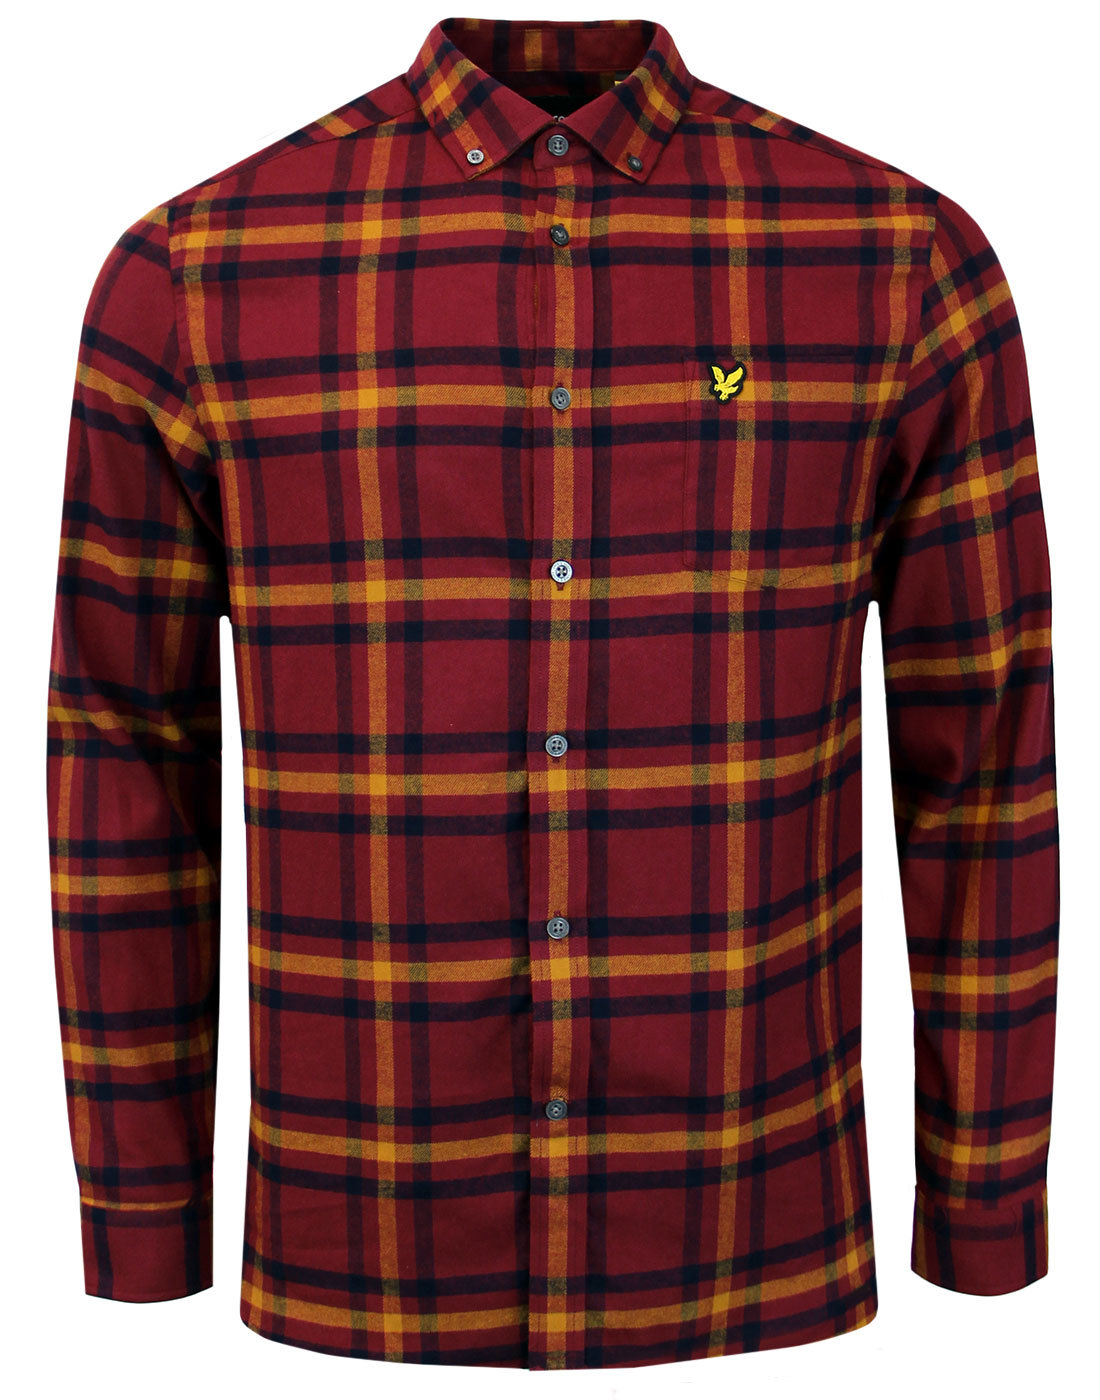 LYLE & SCOTT Retro Mod Plaid Check Flannel Shirt